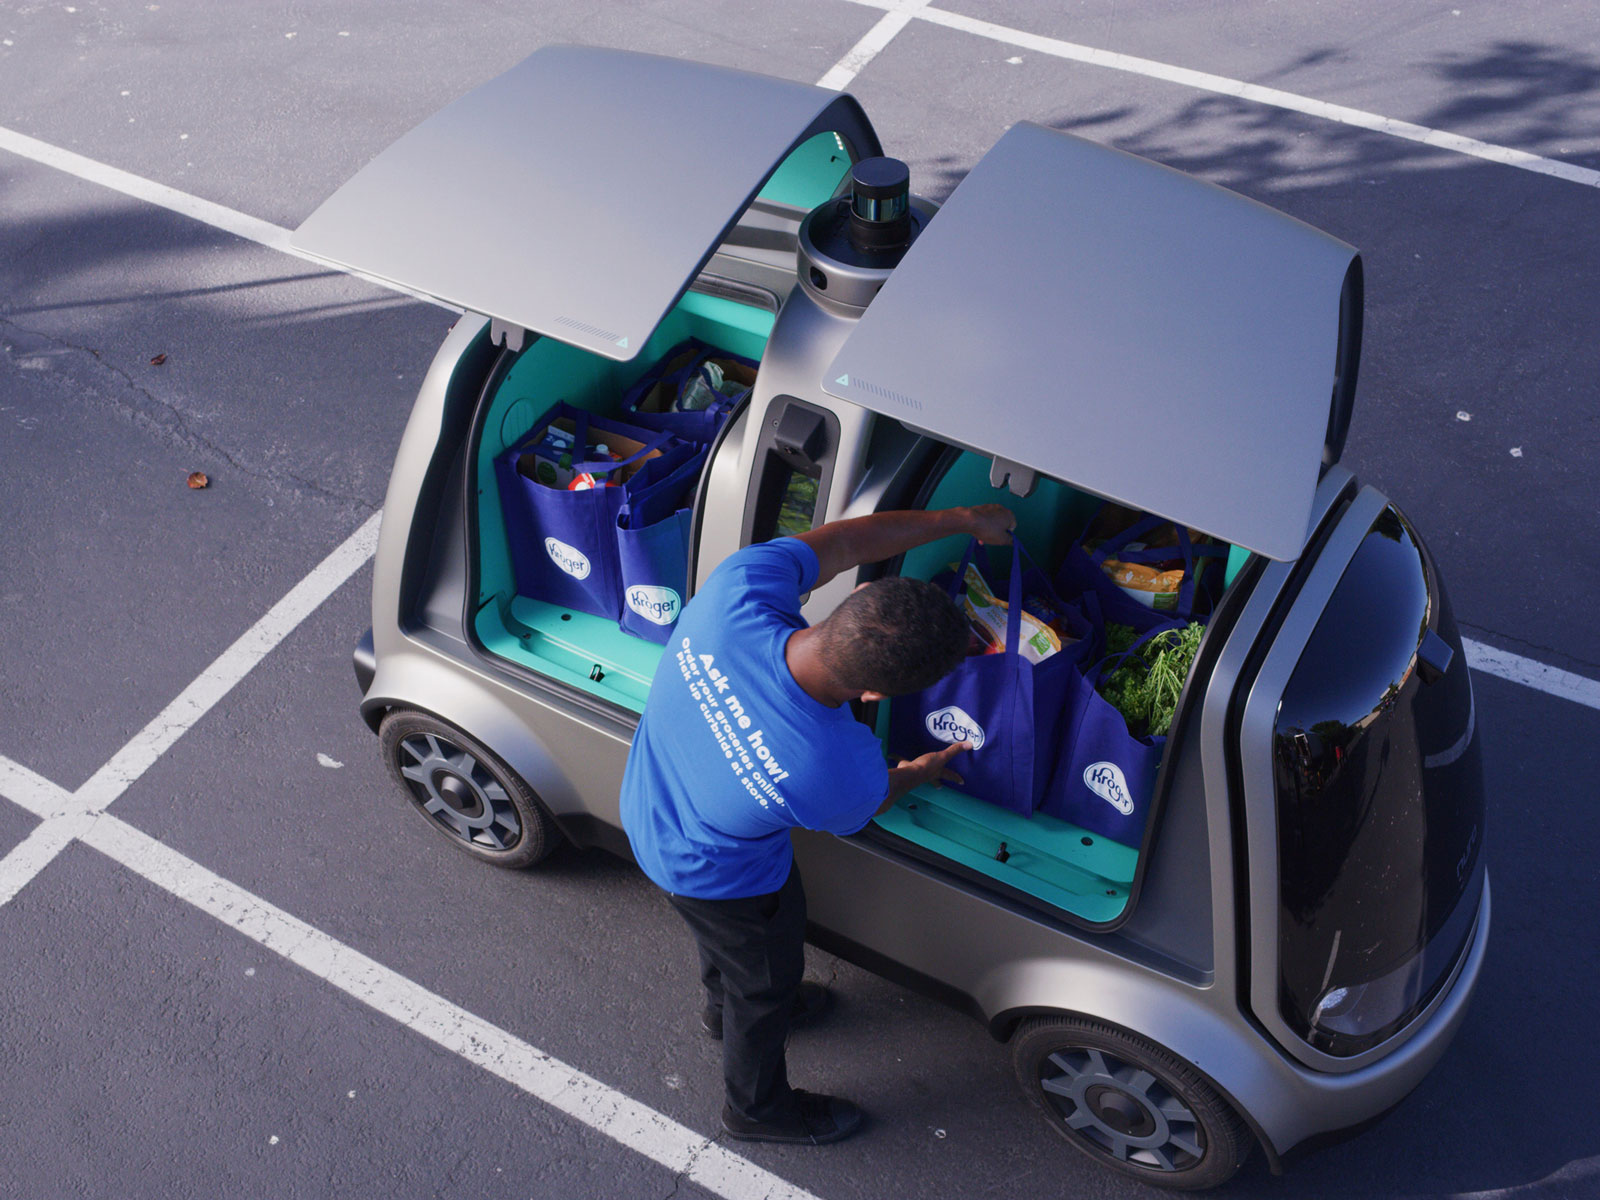 Nuro Kroger Robotic Grocery Delivery